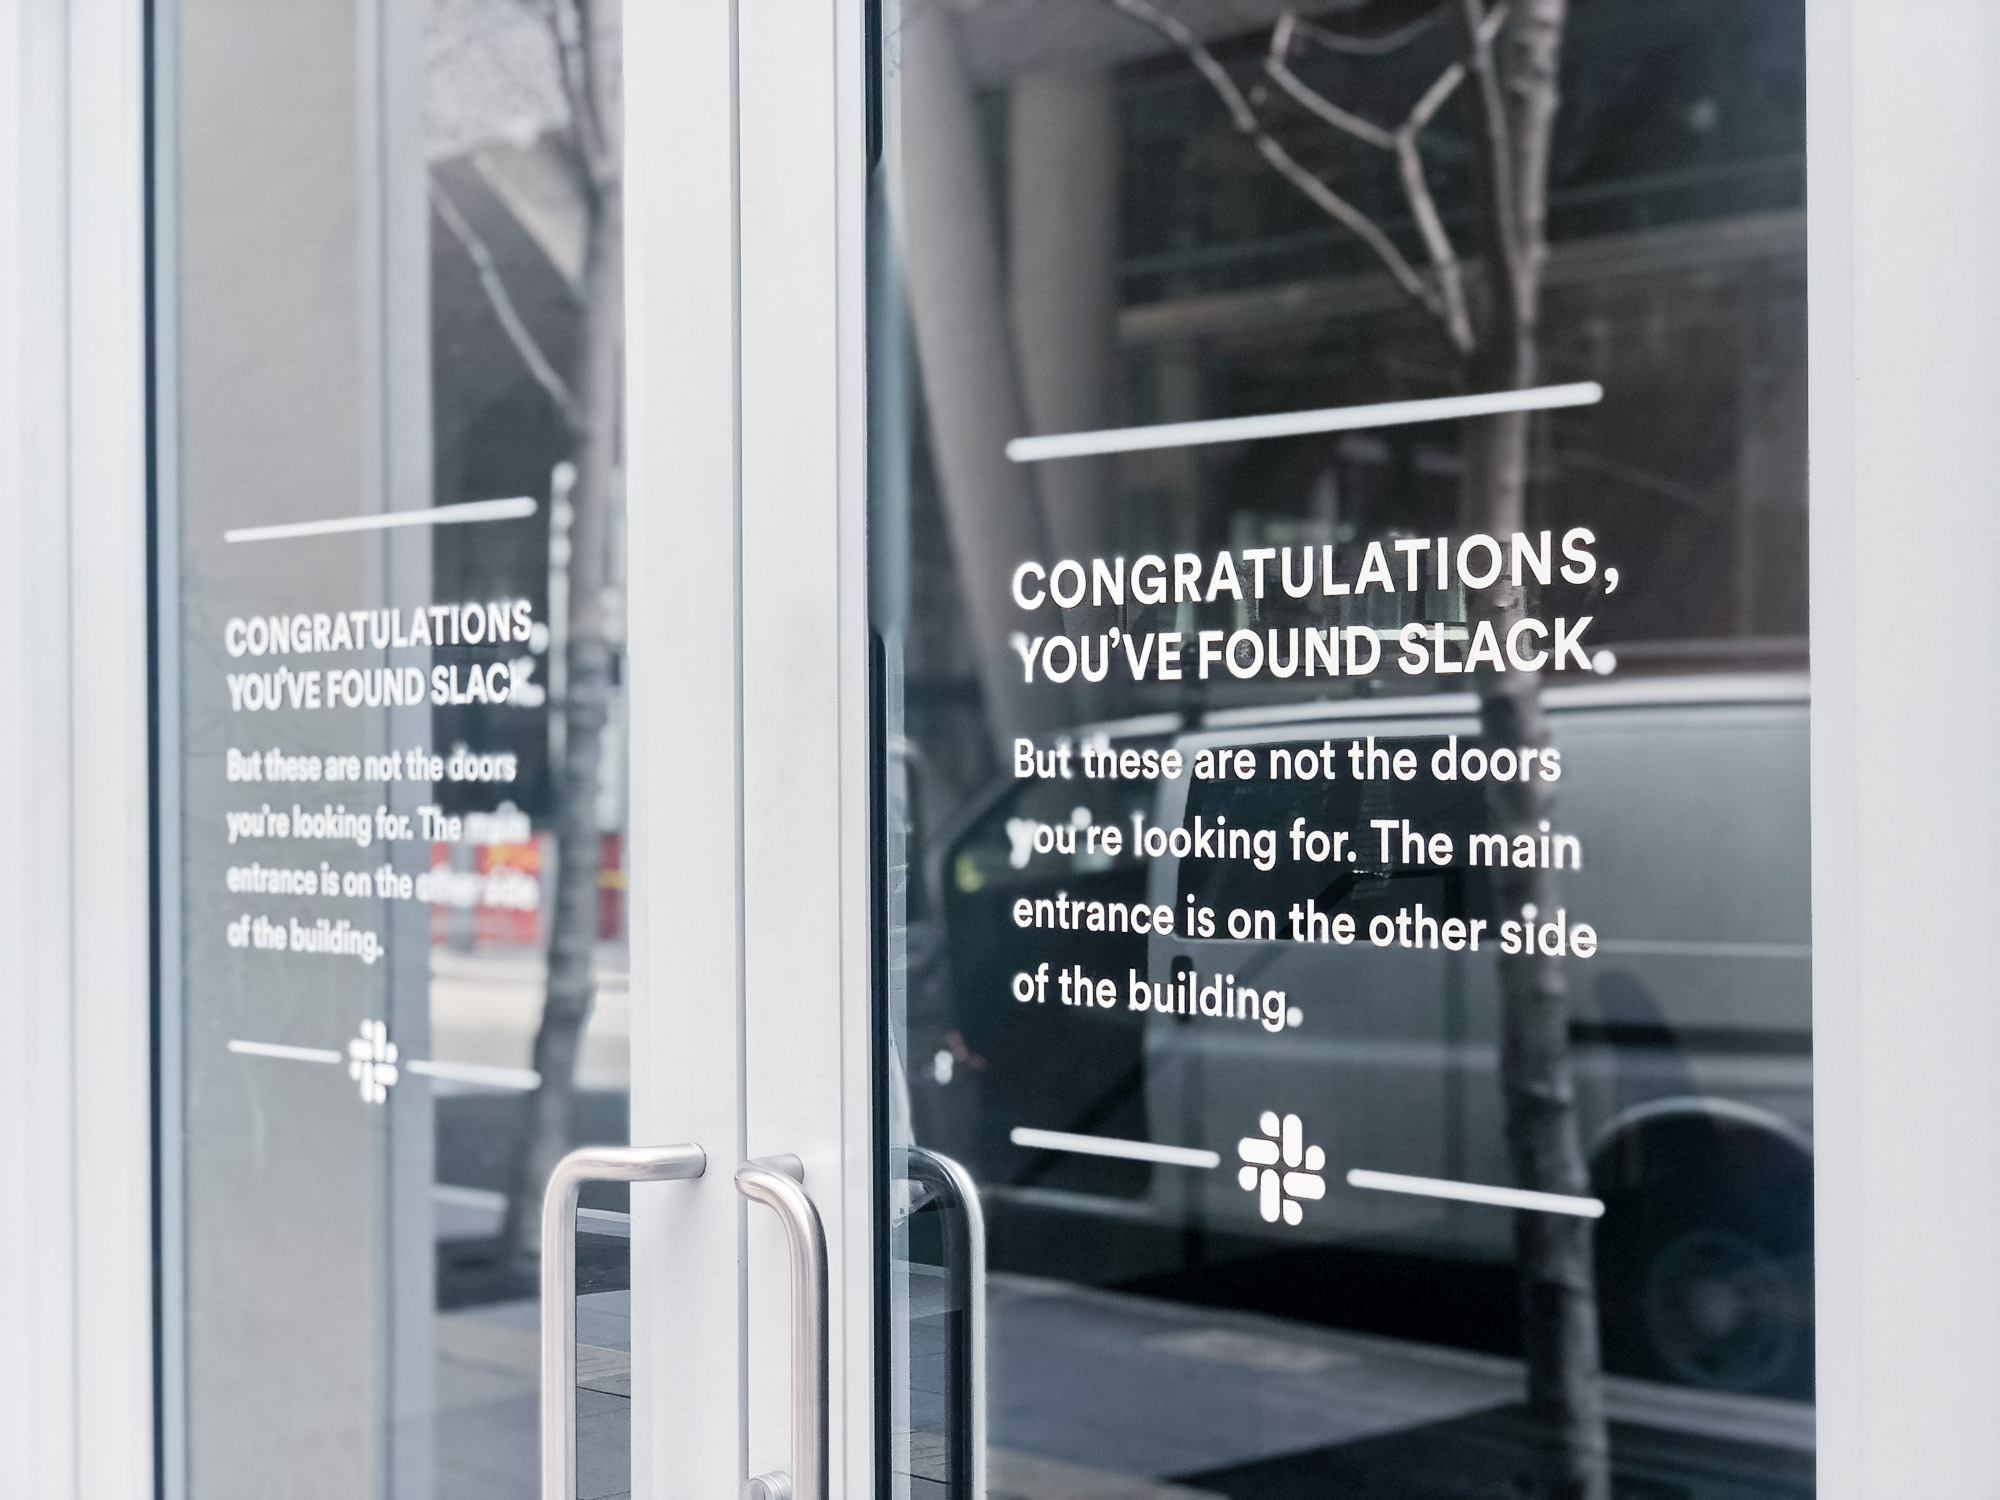 Matte white vinyl wayfinding sign with white text on glass doors for the San Francisco office of Slack, an American cloud-based set of proprietary team collaboration tools and services.